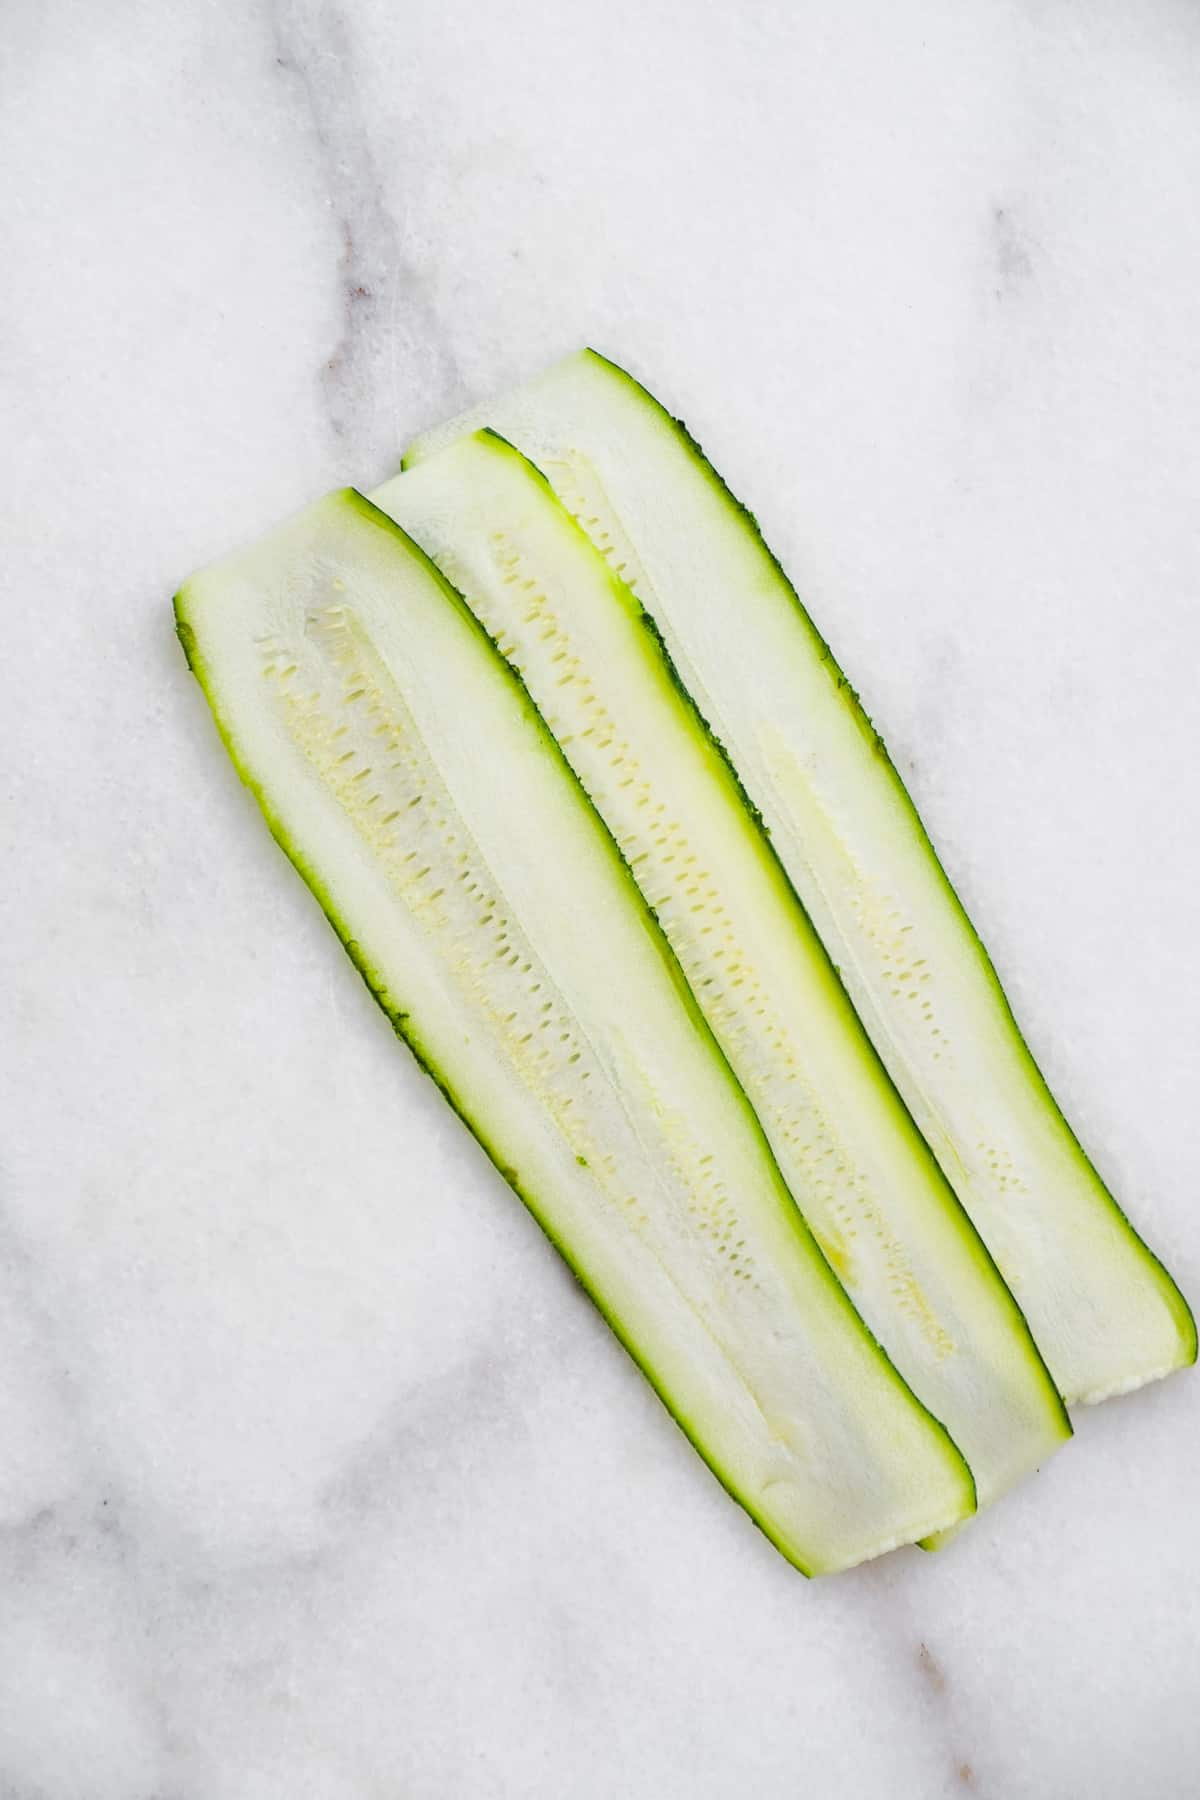 Three zucchini strips overlapping on a marble surface.